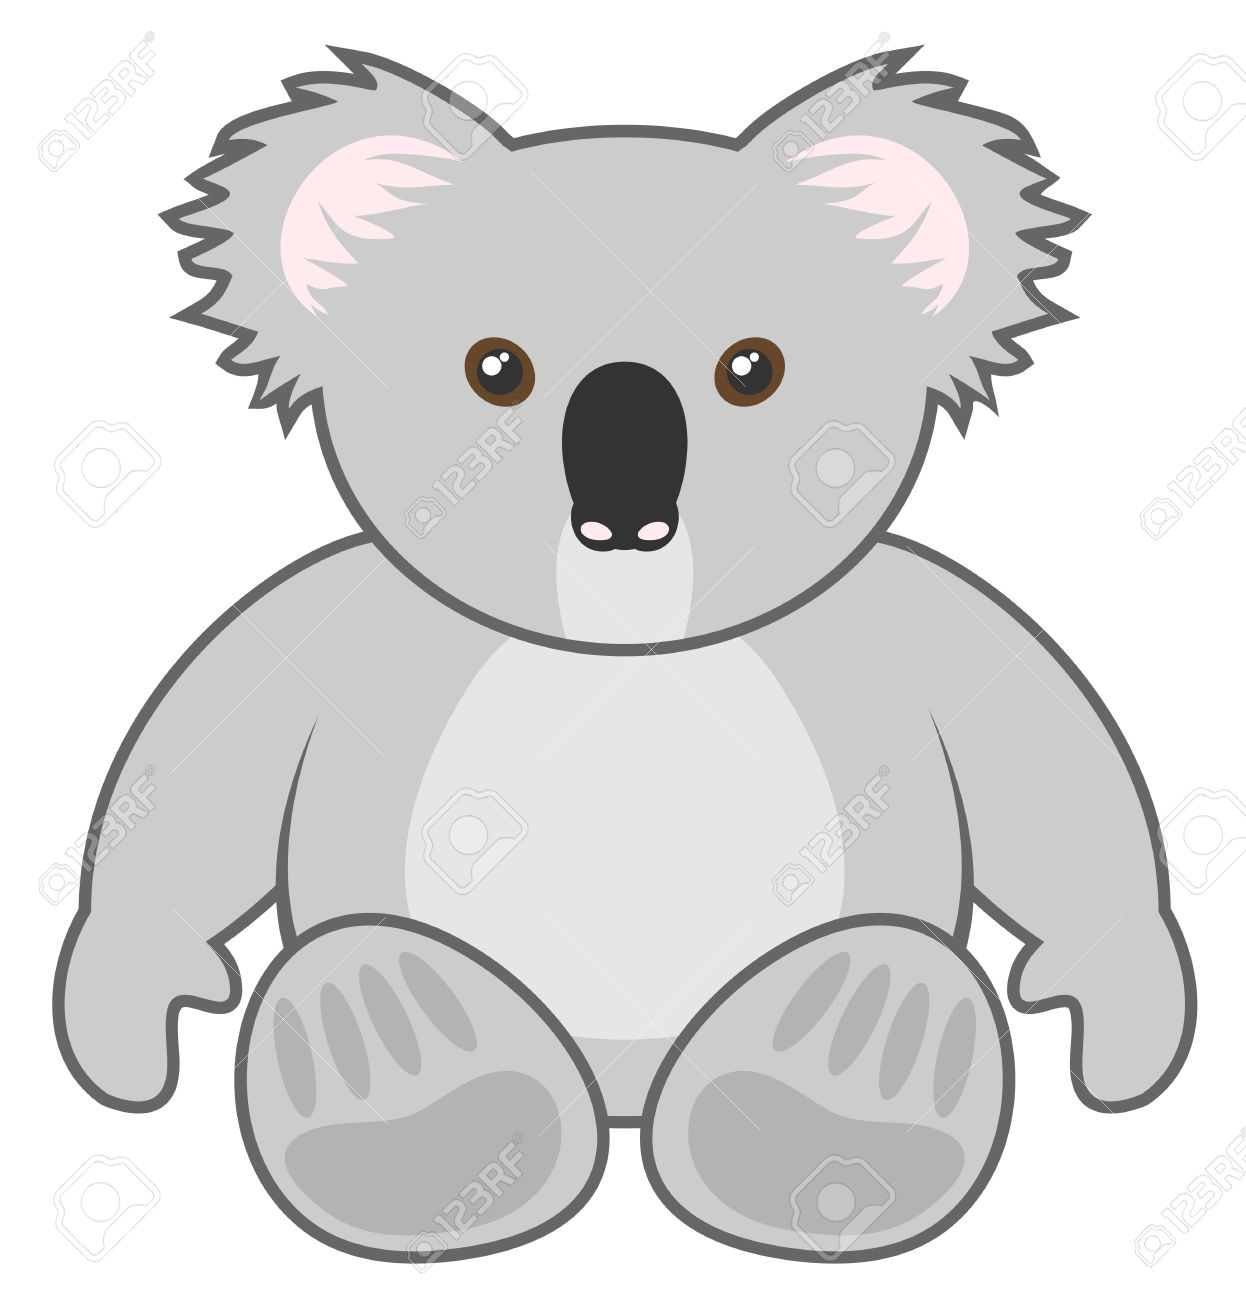 Uncategorized Draw Koala koala draw royalty free cliparts vectors and stock illustration vector 18764498